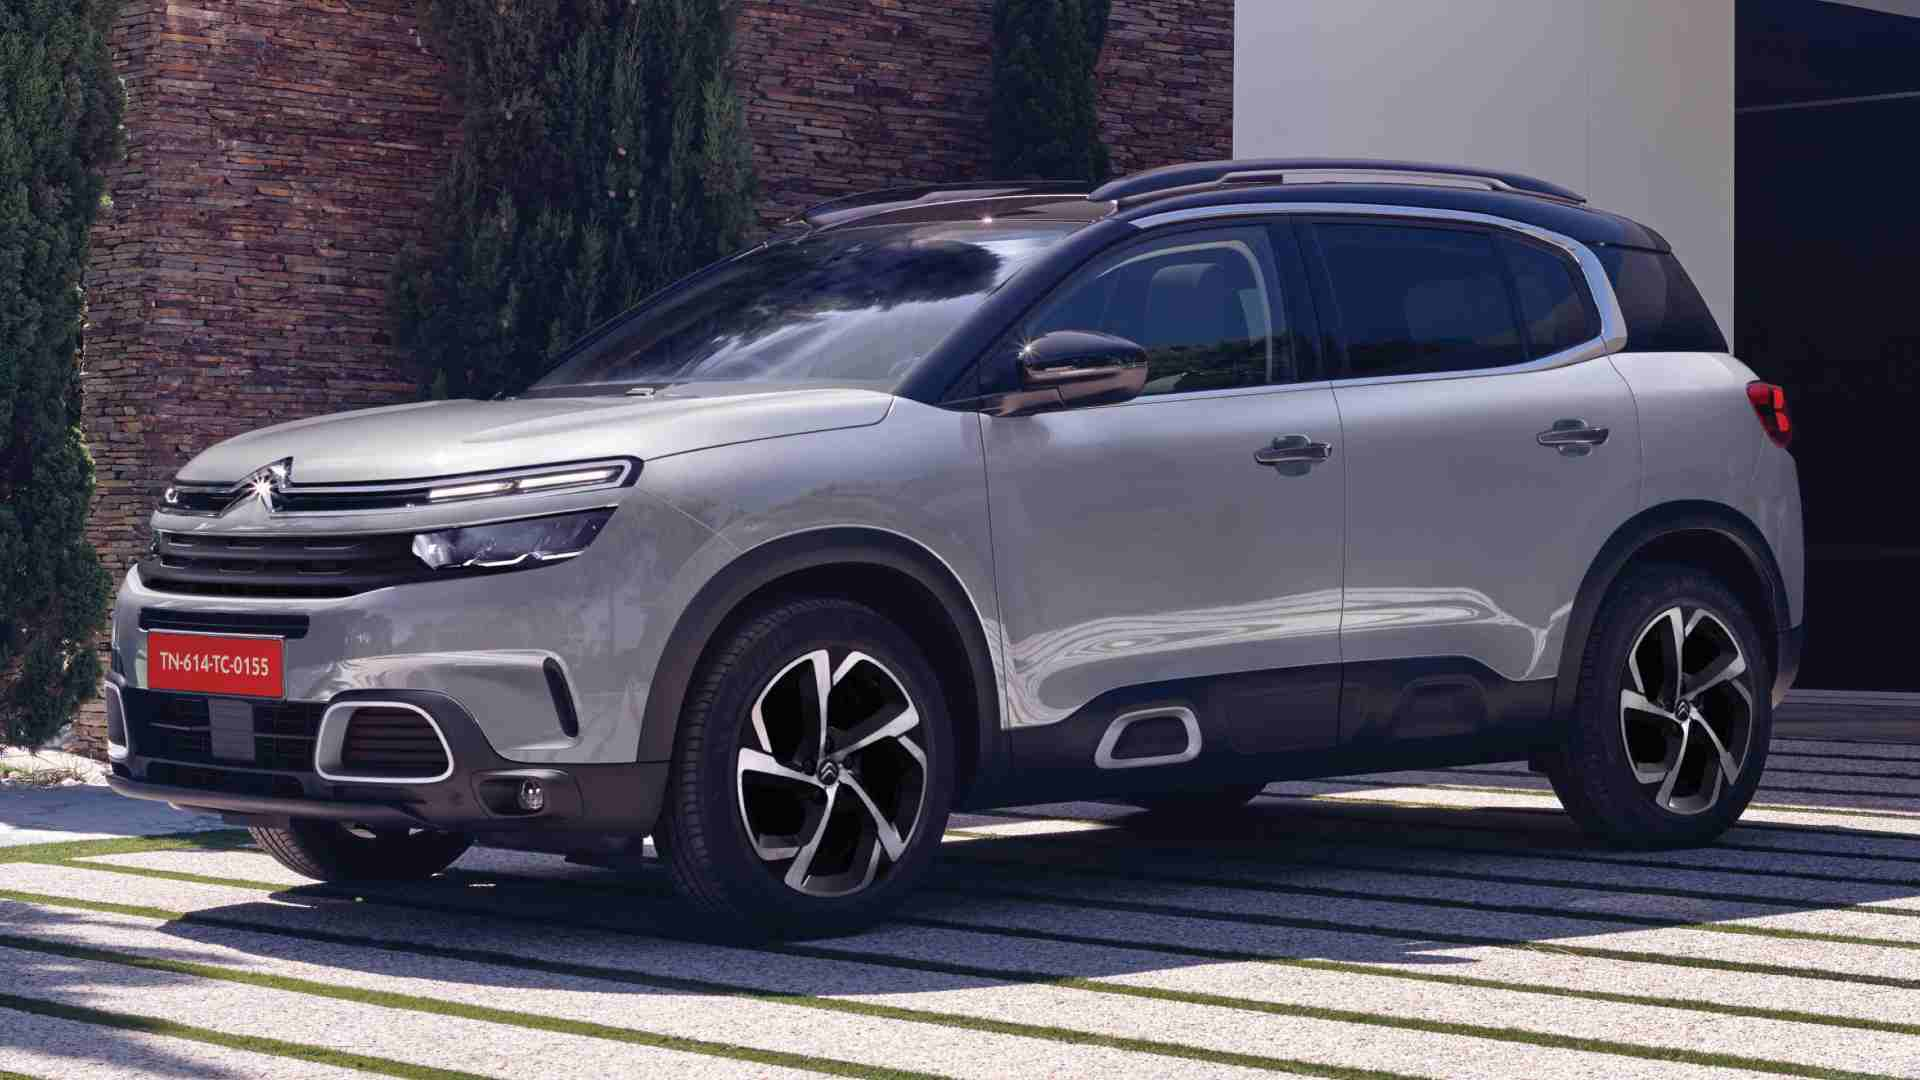 Citroen C5 Aircross launched in India at introductory starting price of Rs 29.90 lakh- Technology News, Gadgetclock